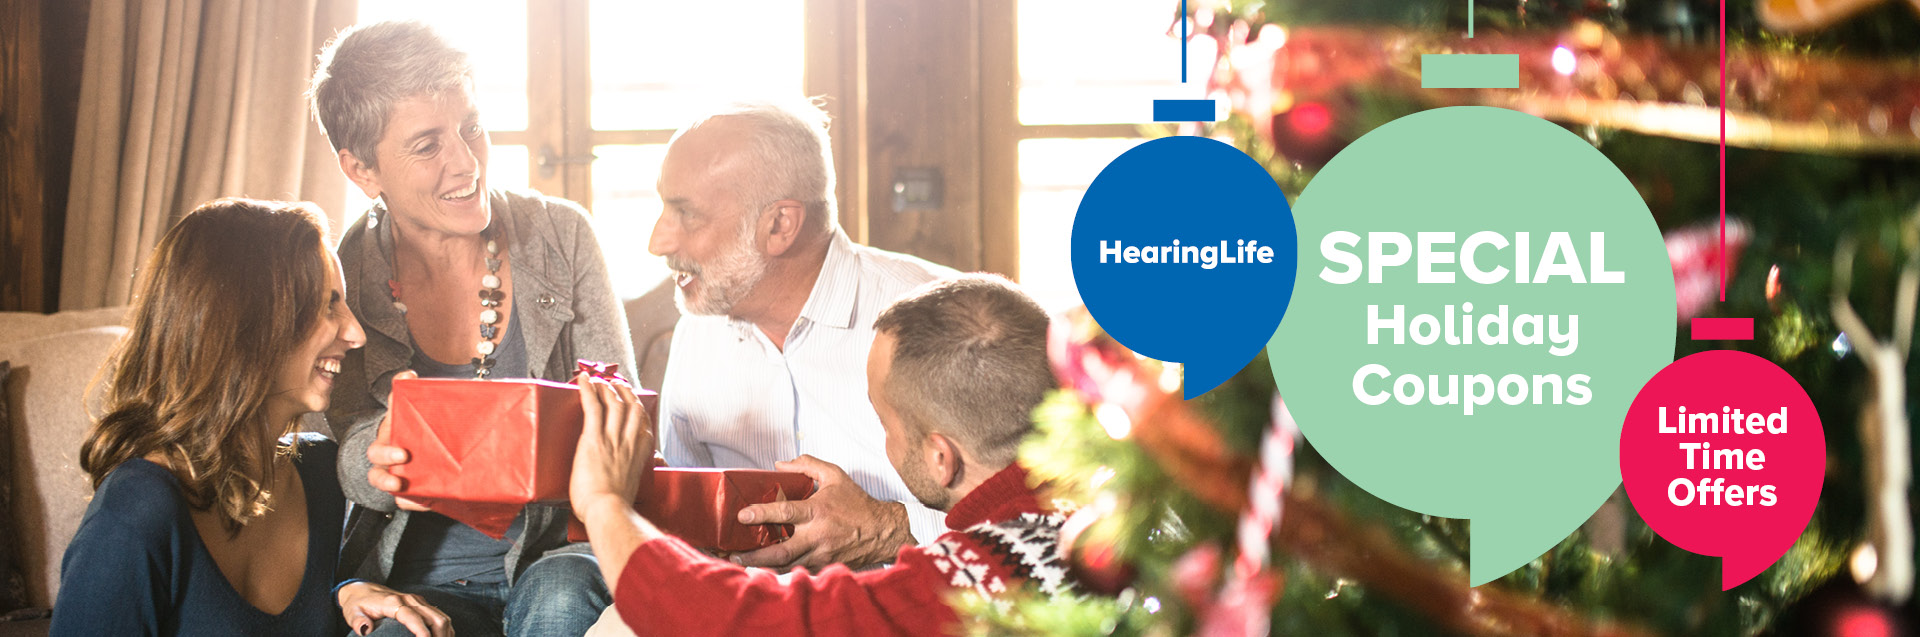 Hearing professional fitting a hearing aid in the ear of a smiling client.